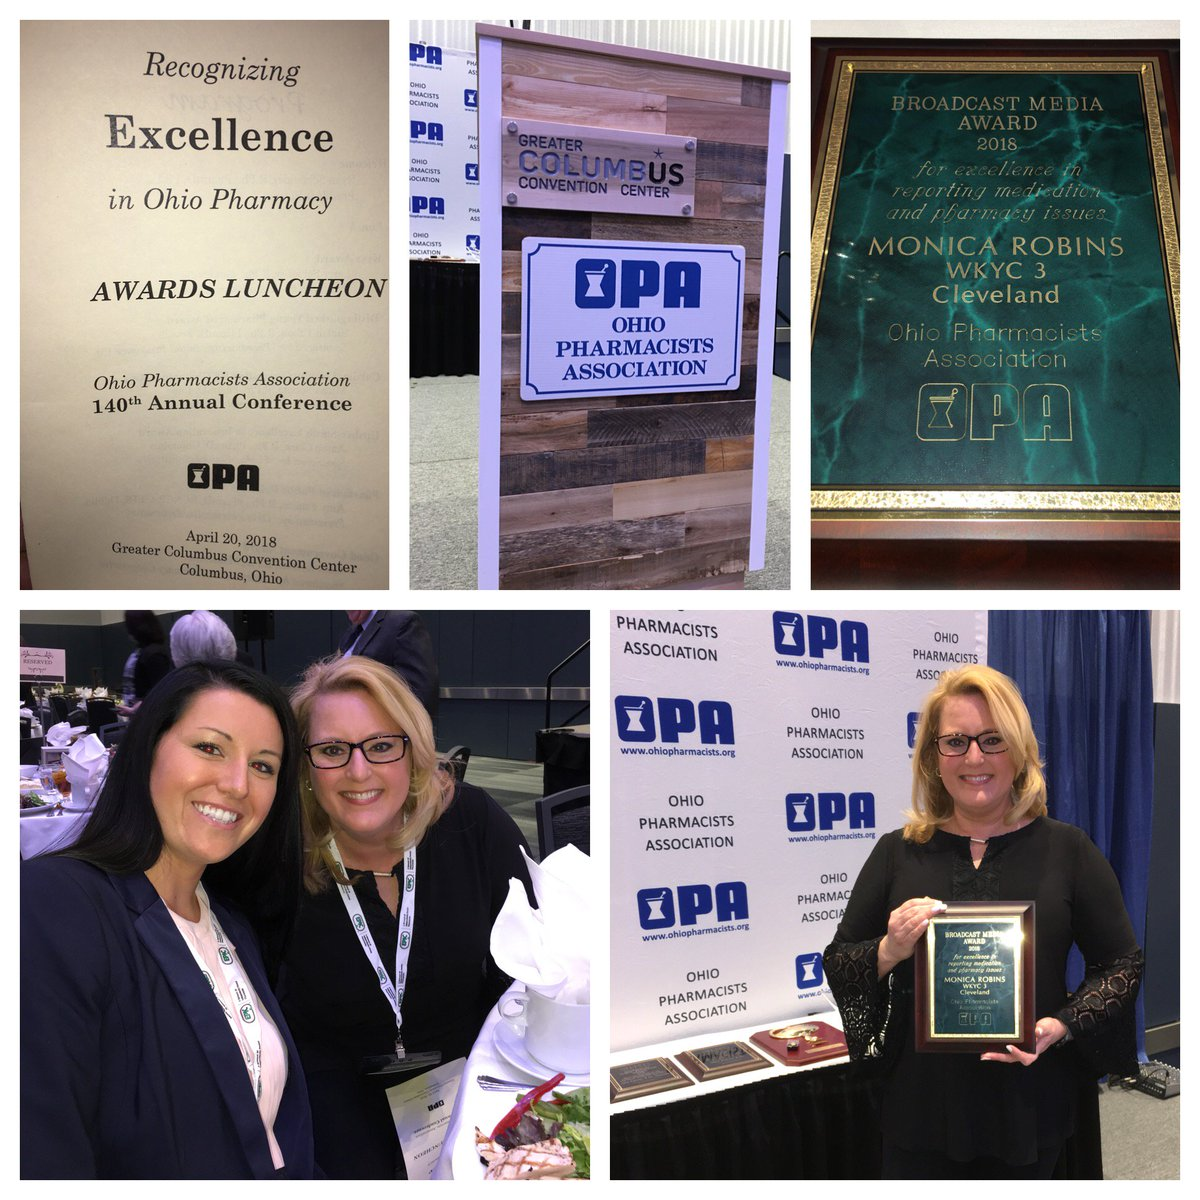 Thank you to the Ohio Pharmacists Association for presenting me with their Broadcast Media Award for the story I did on @Drug_Mart pharmacist Kara Bloom who discovered skin cancer on a woman getting a flu shot!  @wkyc @OhioPharmacists